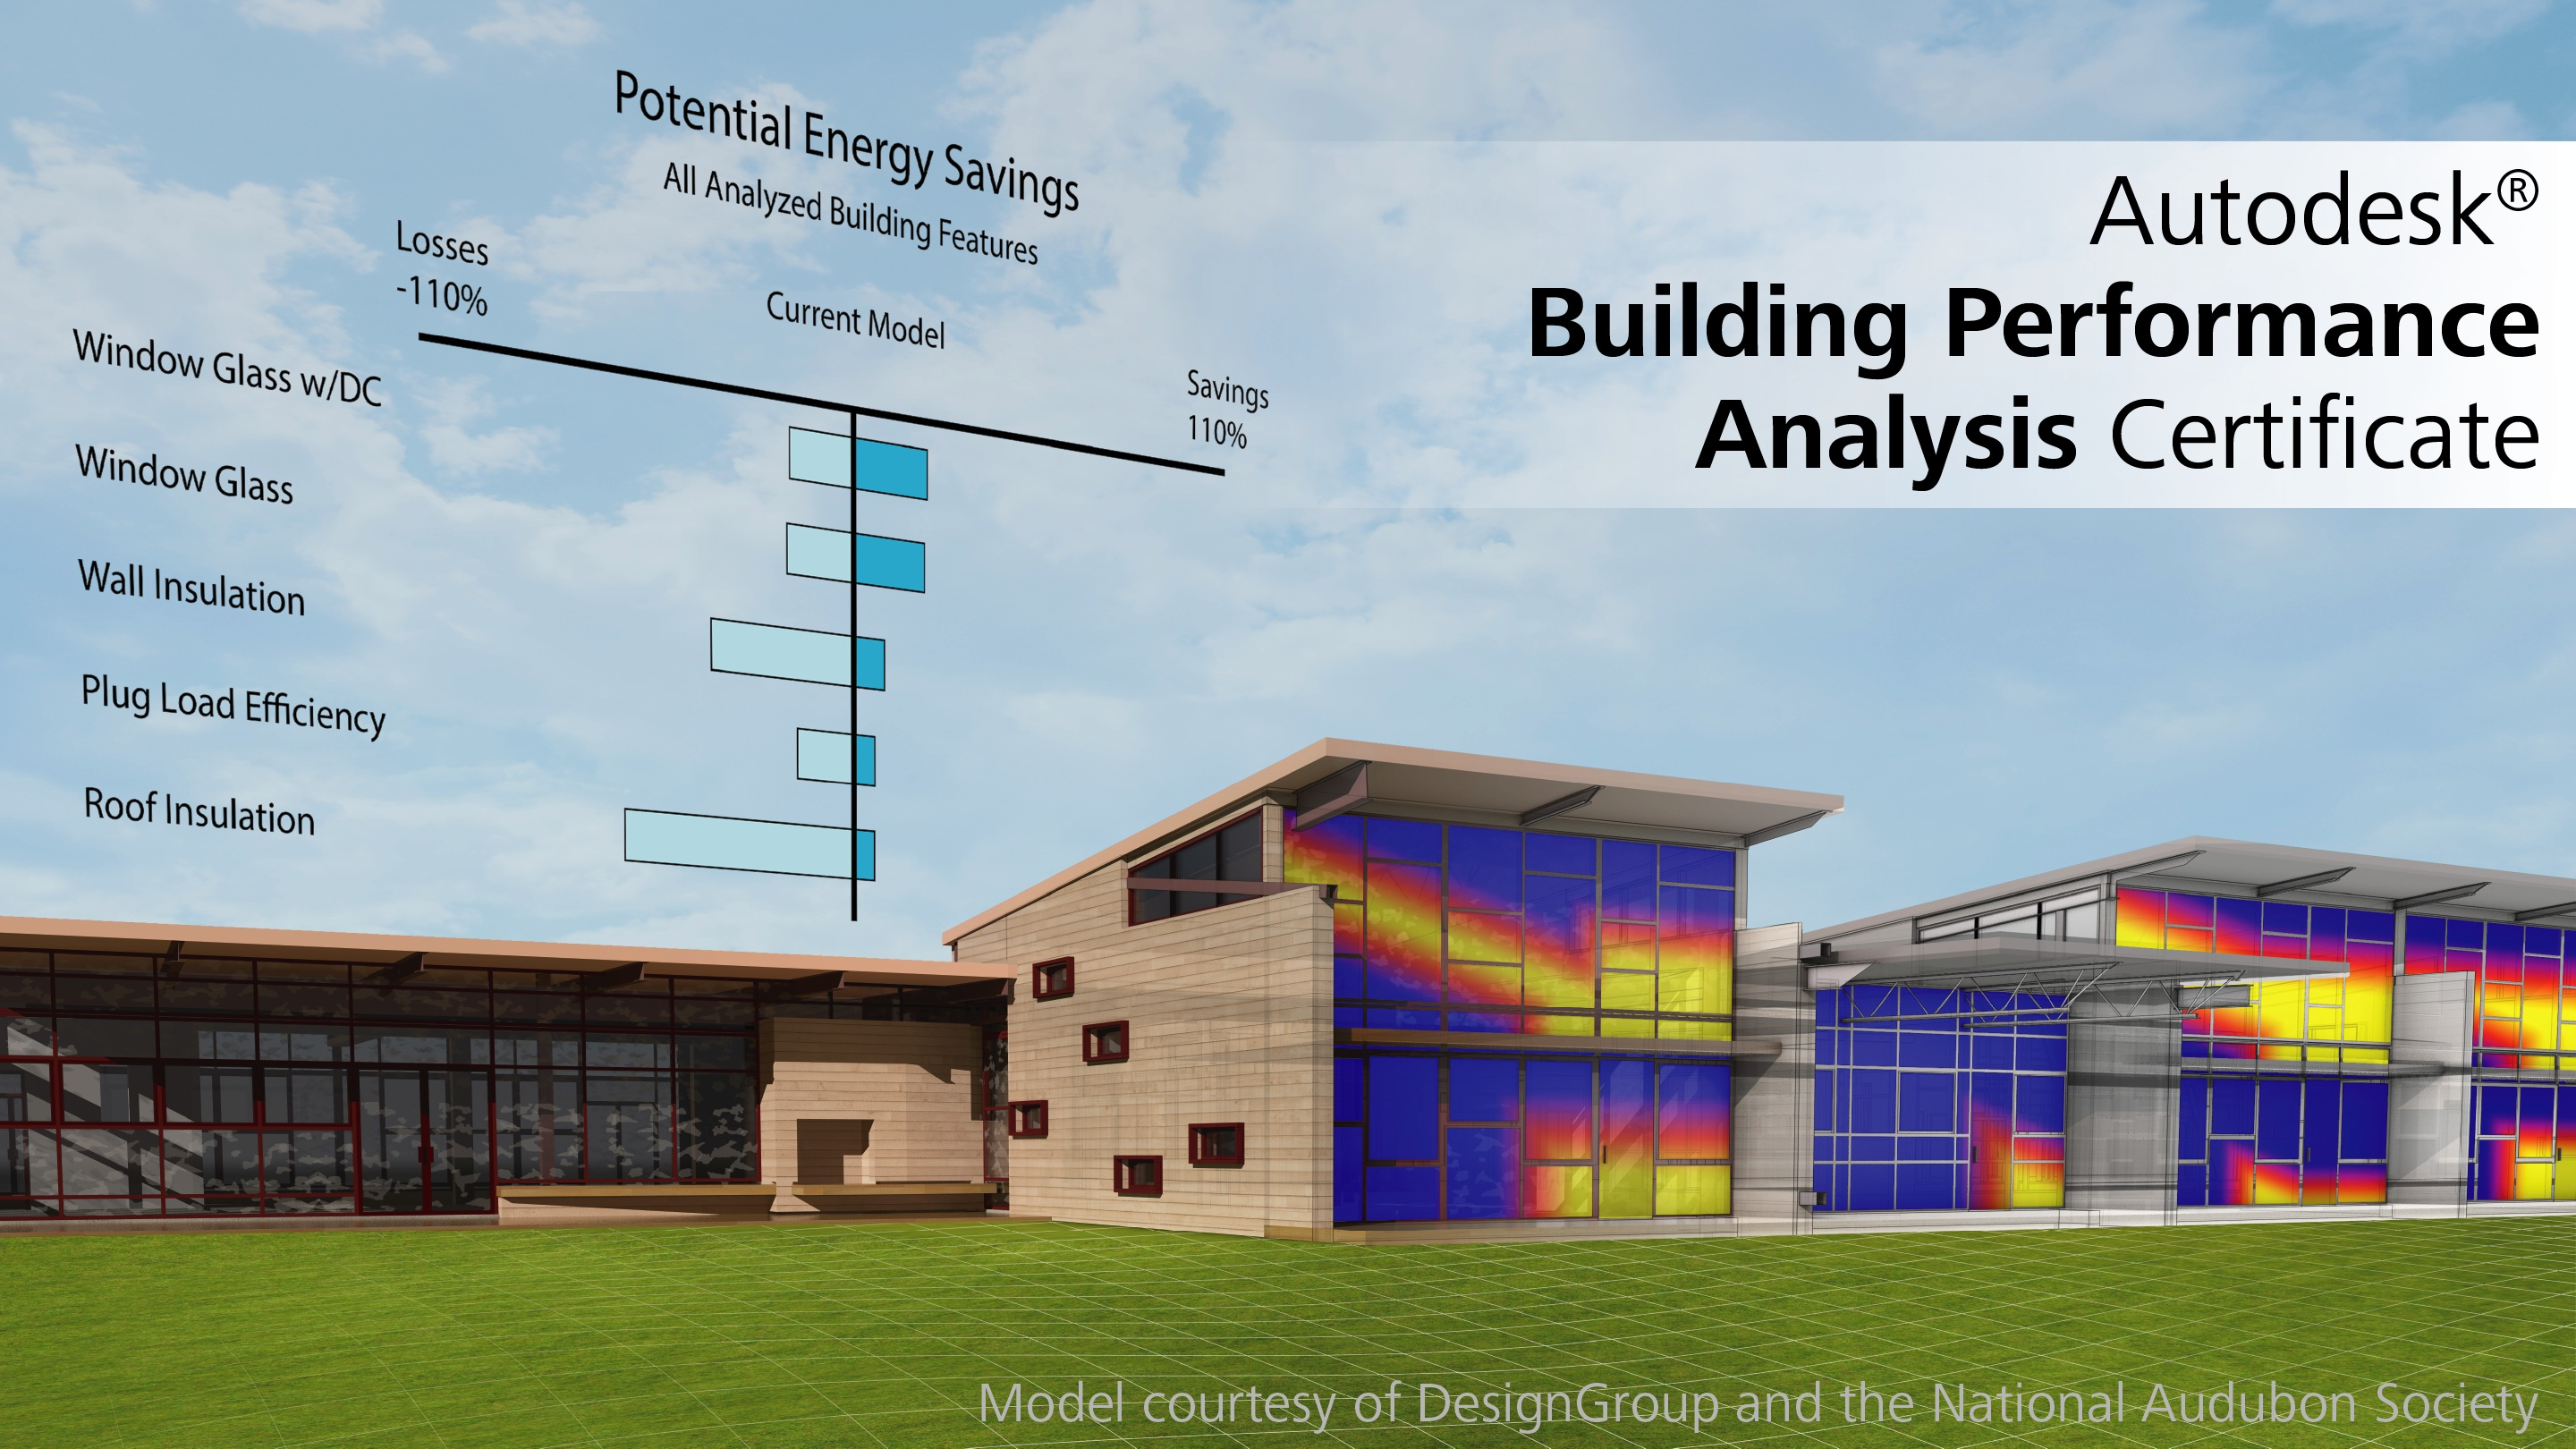 Autodesk Announcements at Greenbuild - Building Performance Analysis